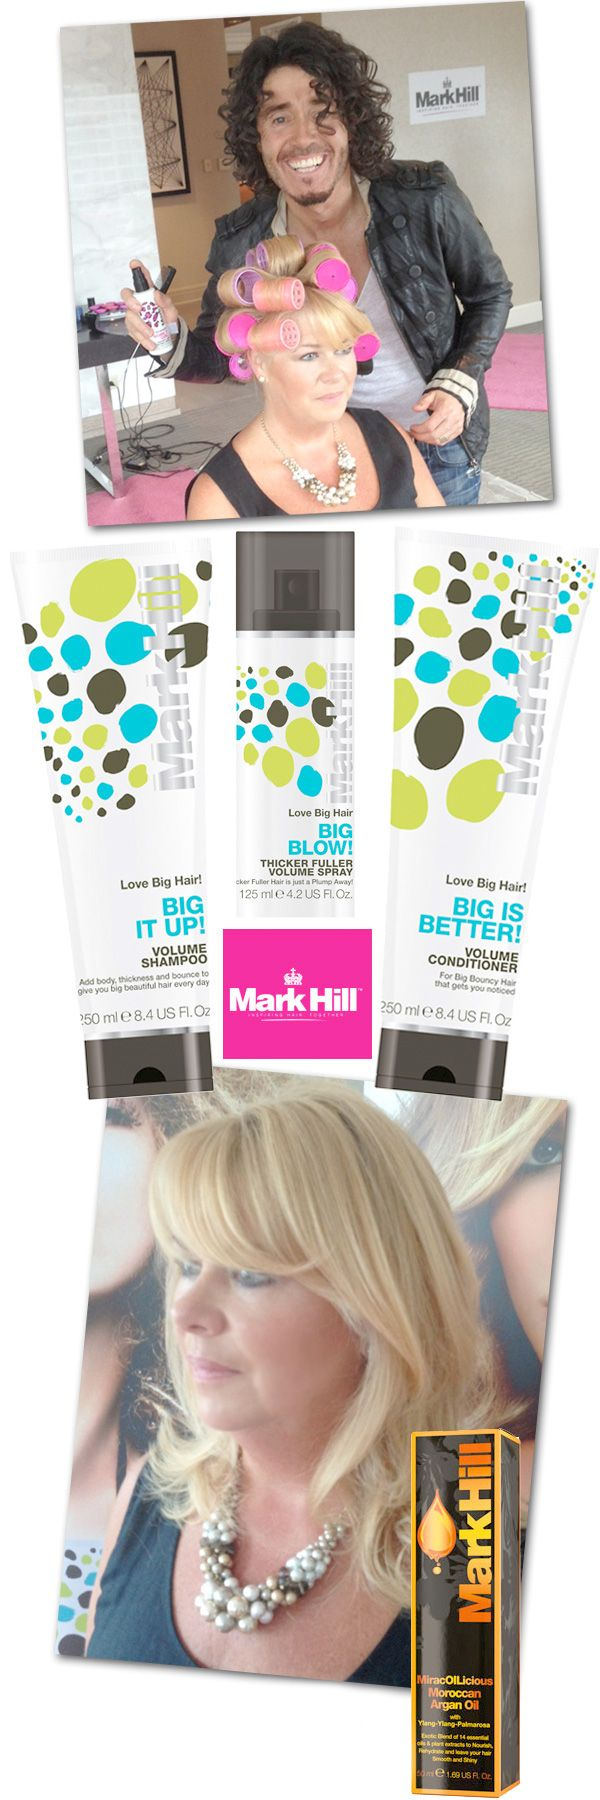 Mark Hill Hair Now in the US atWalgreens.  Big hit in the UK - now only available in the US at WALGREENS!